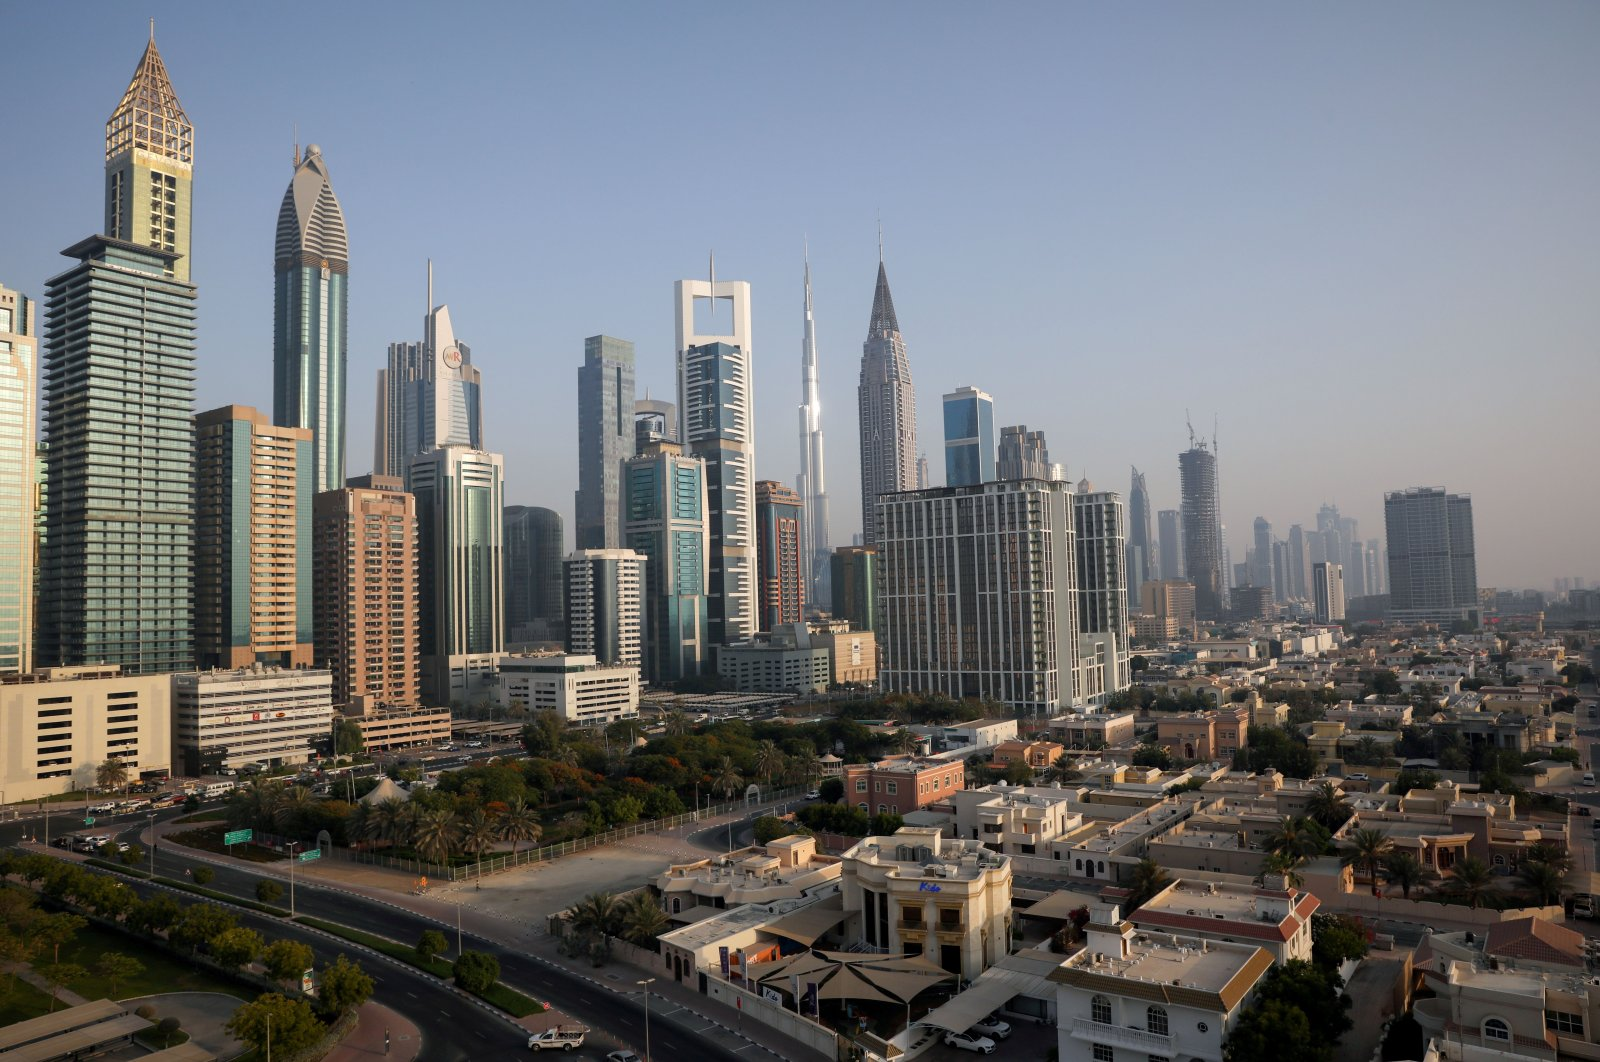 A general view of the Burj Khalifa and the downtown skyline in Dubai, United Arab Emirates, June 12, 2021. (Reuters Photo)